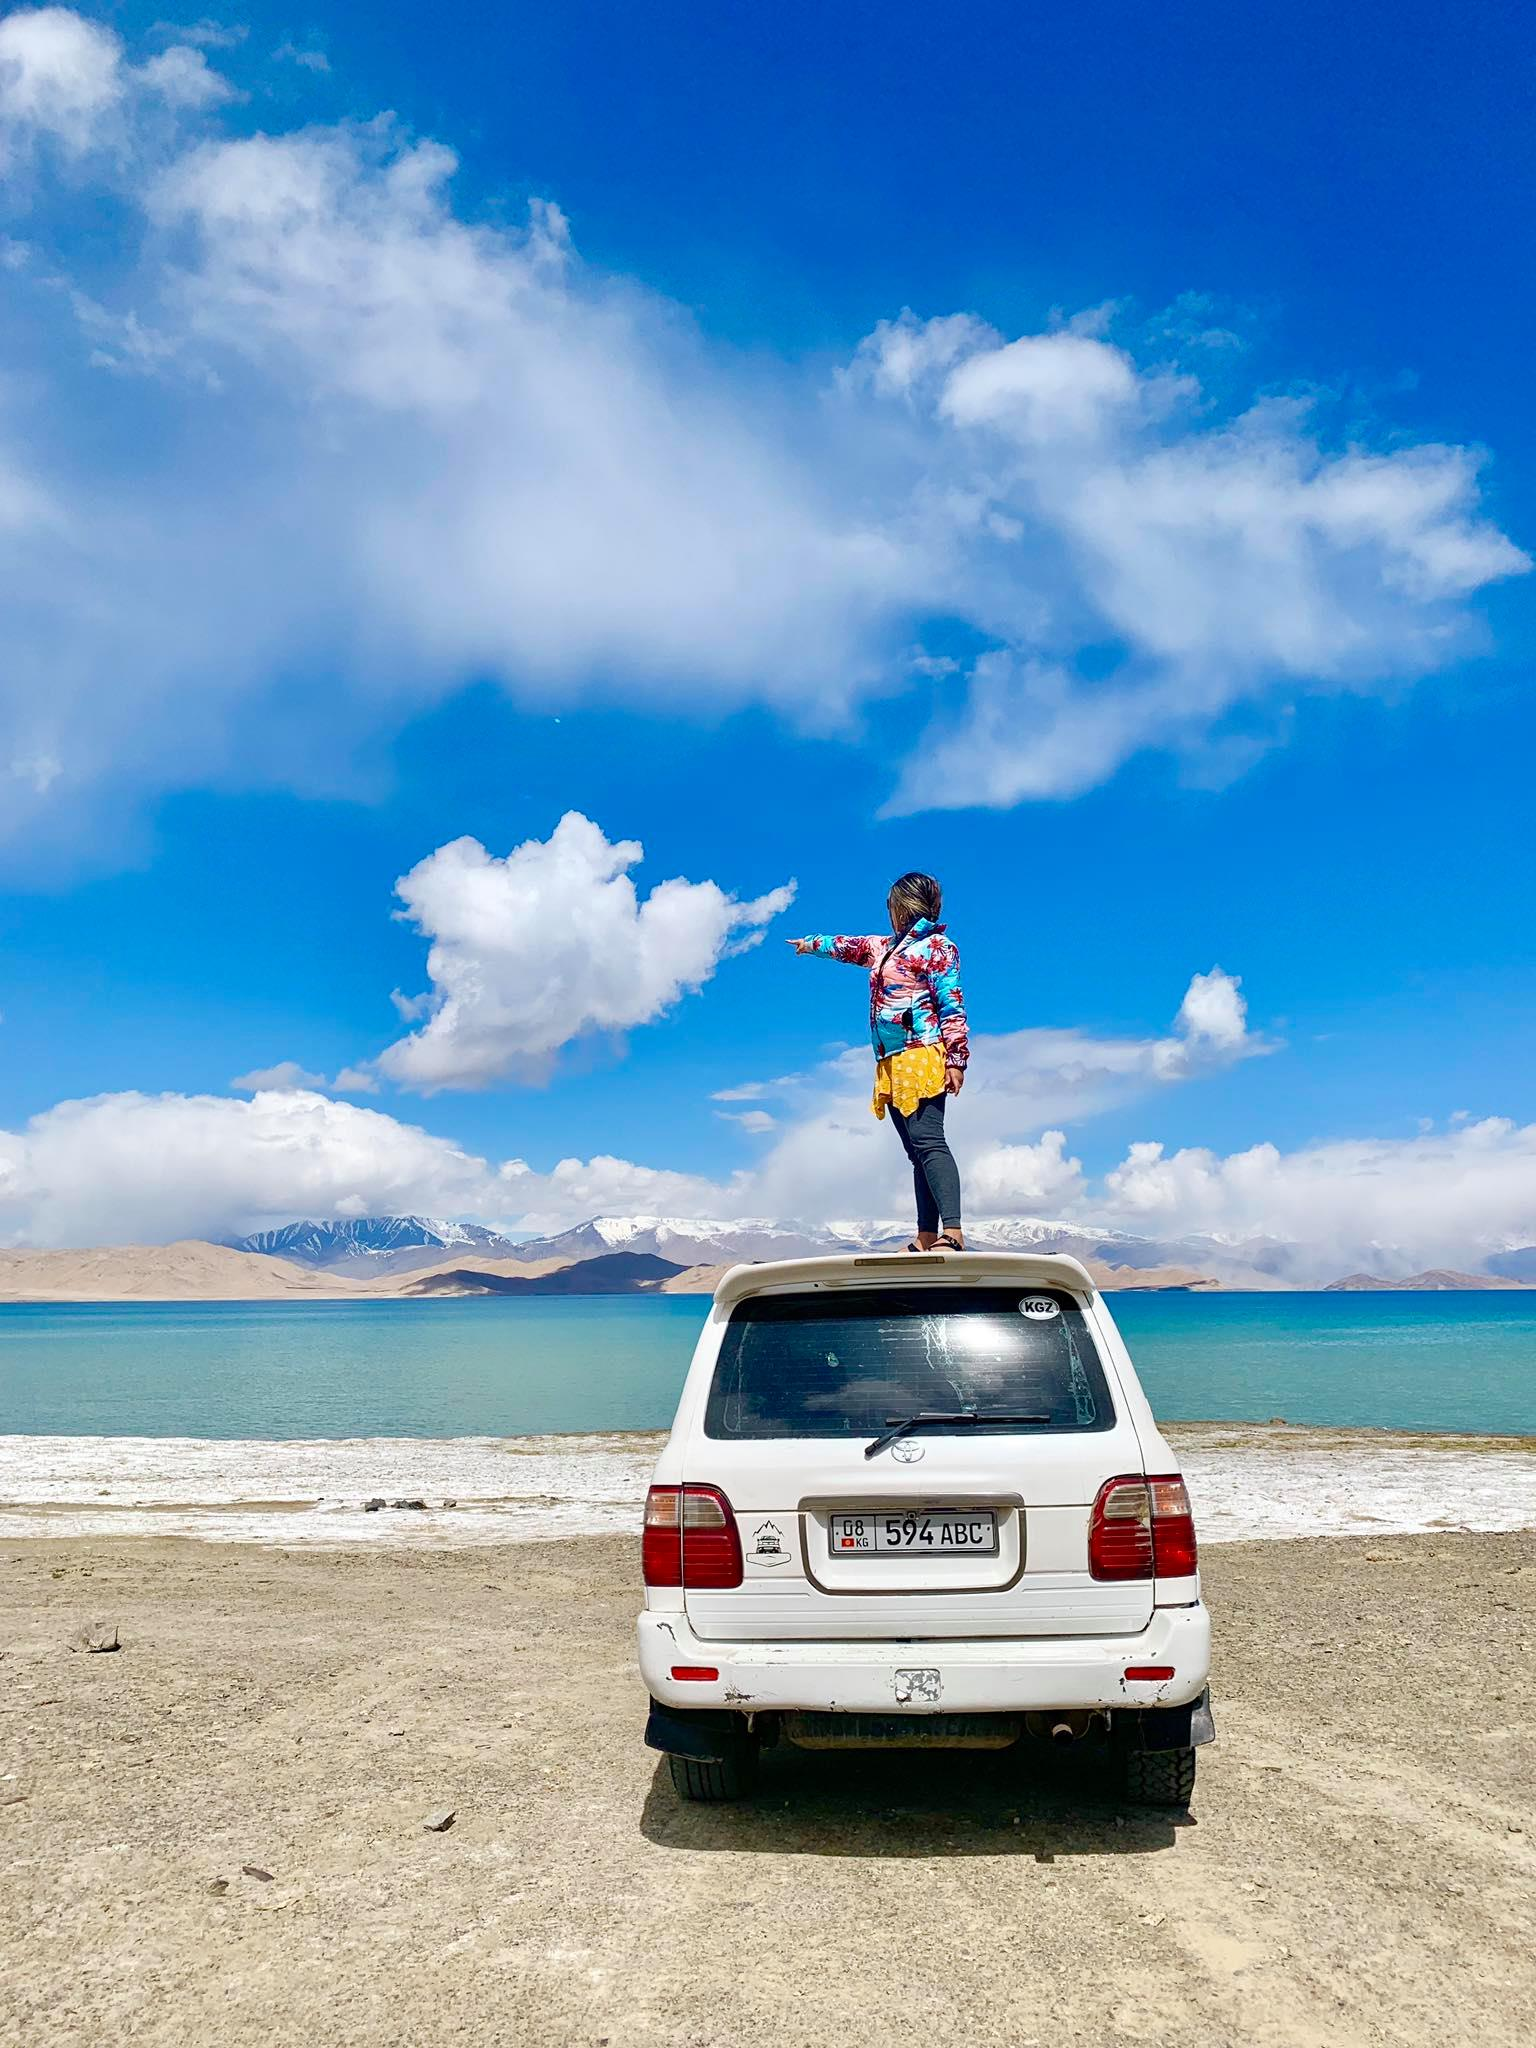 Kach Solo Travels in 2019 Last 8 days of Pamir Highway roadtrip with Paramount Journey6.jpg